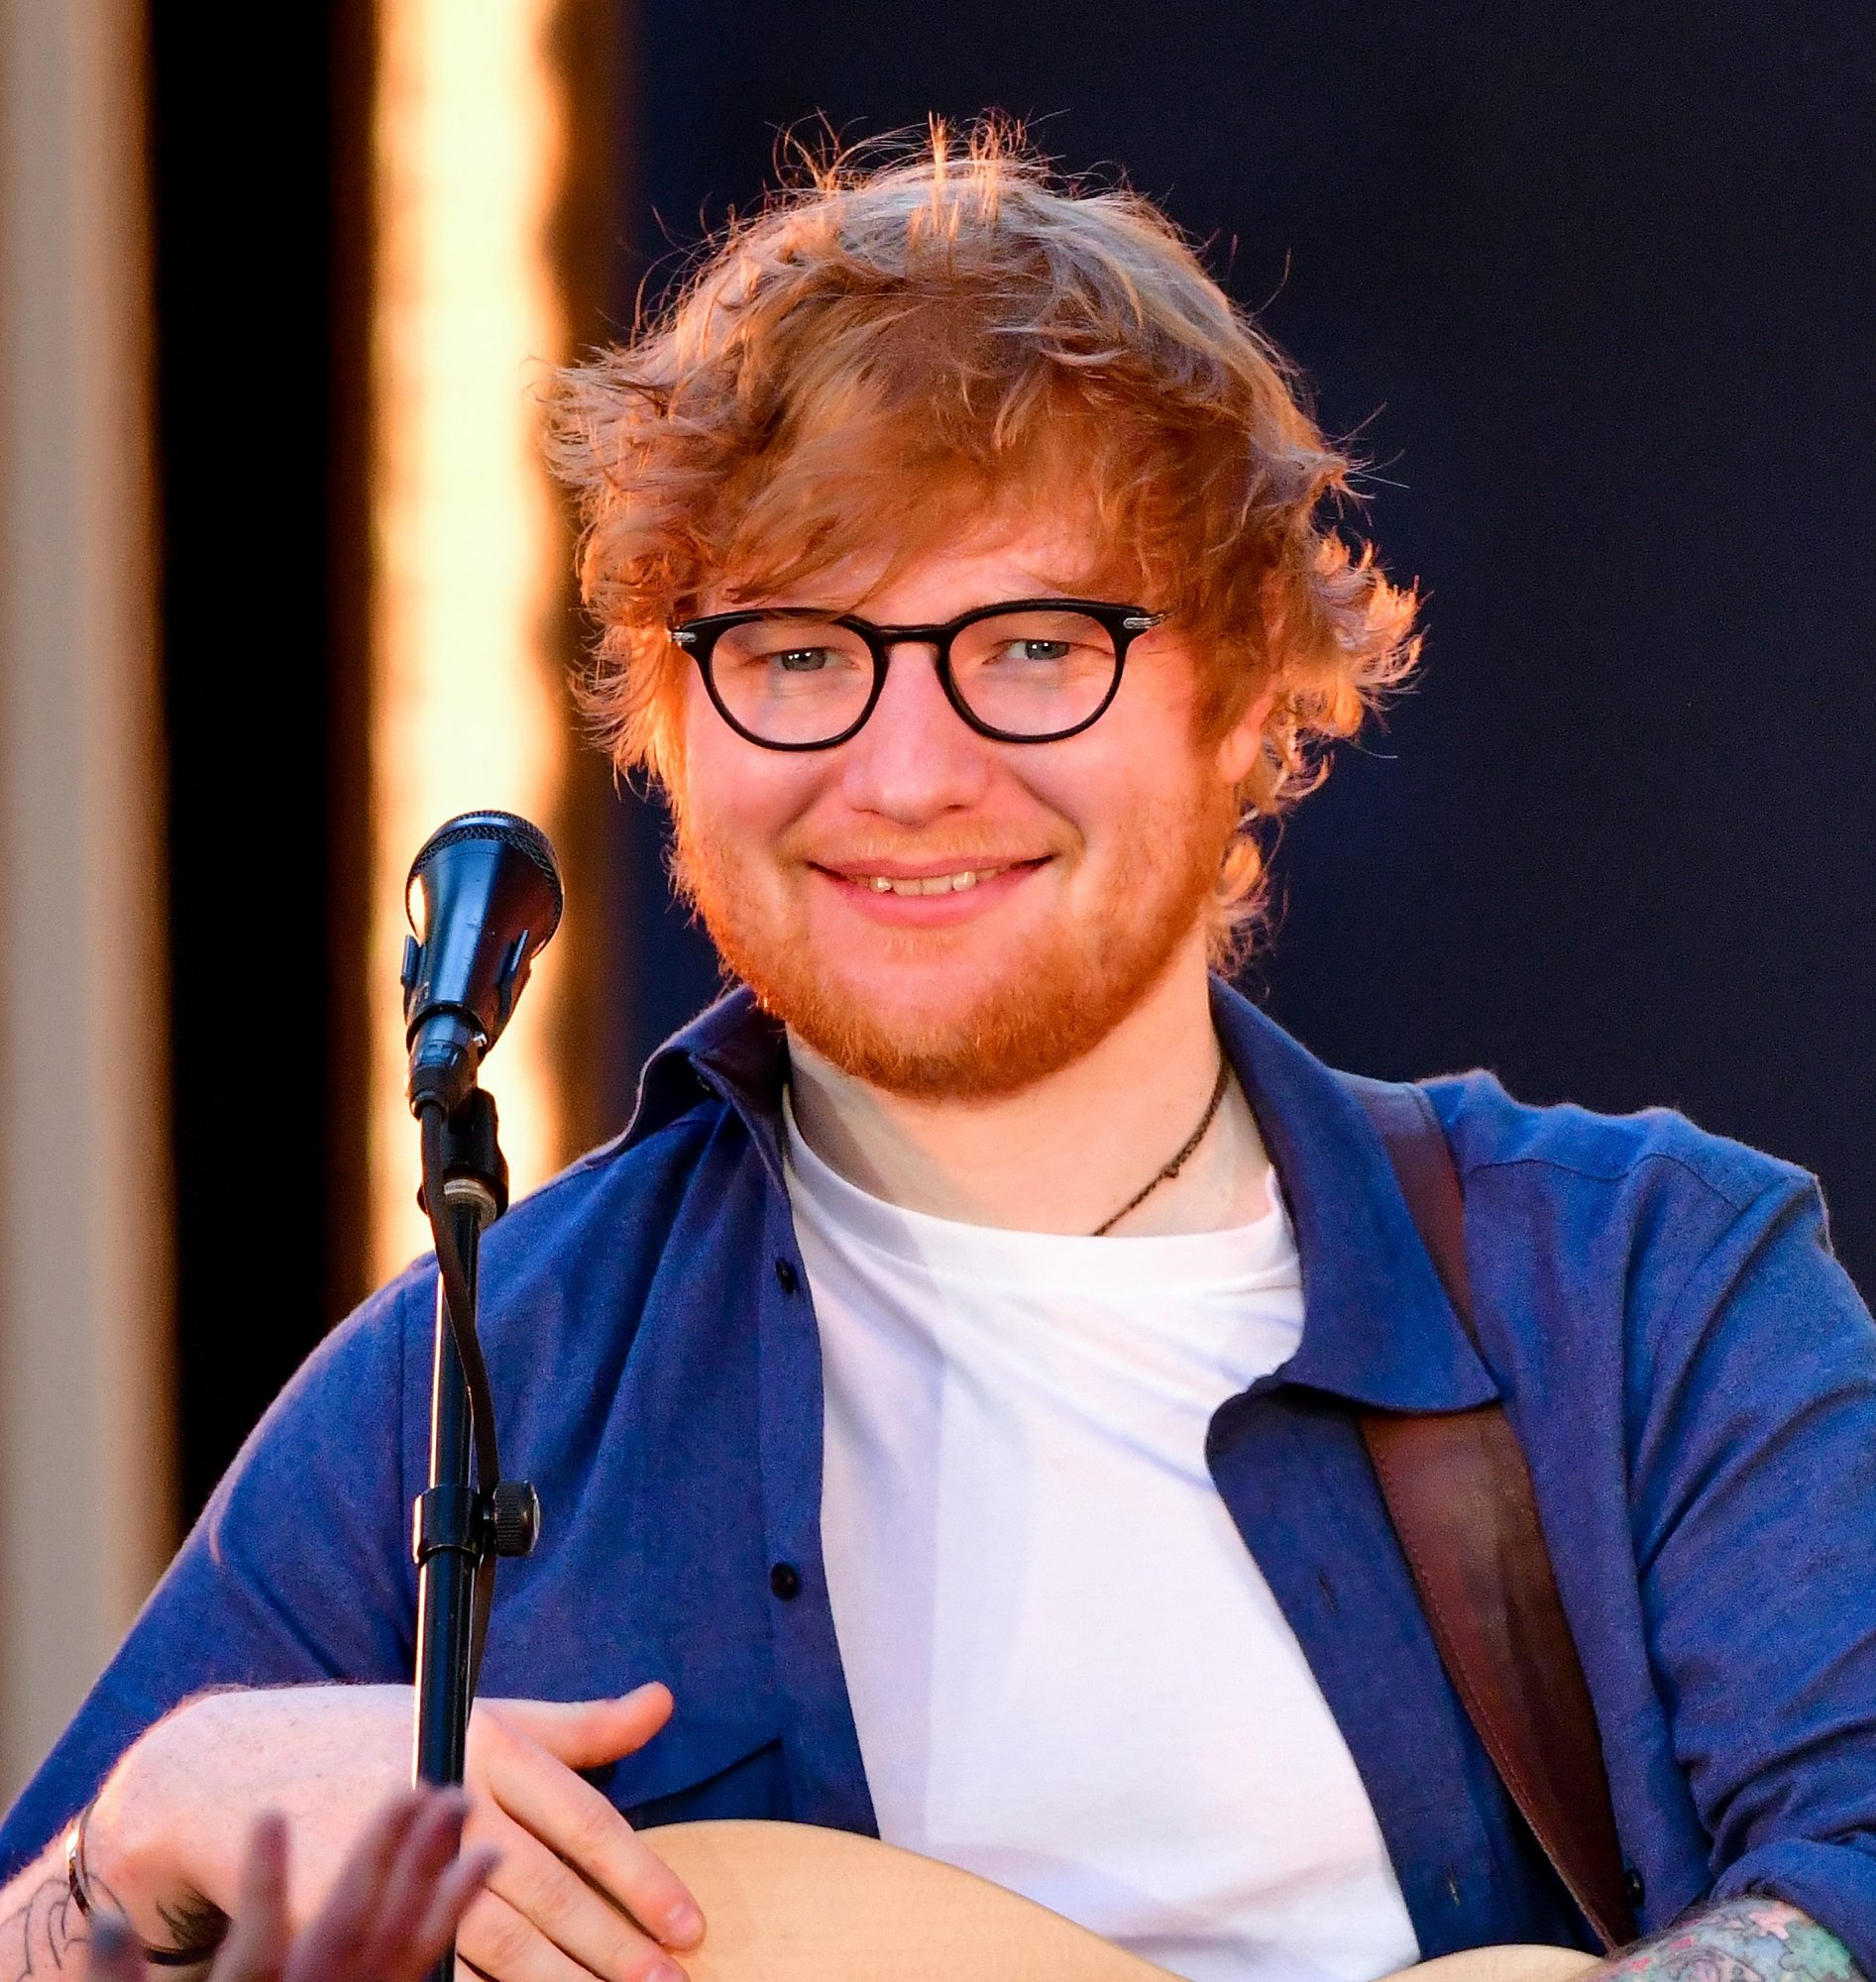 Ed Sheeran Reveals Substance Abuse Battle, Says Music & His Girlfriend Saved Him: 'It All Starts Off as a Party'